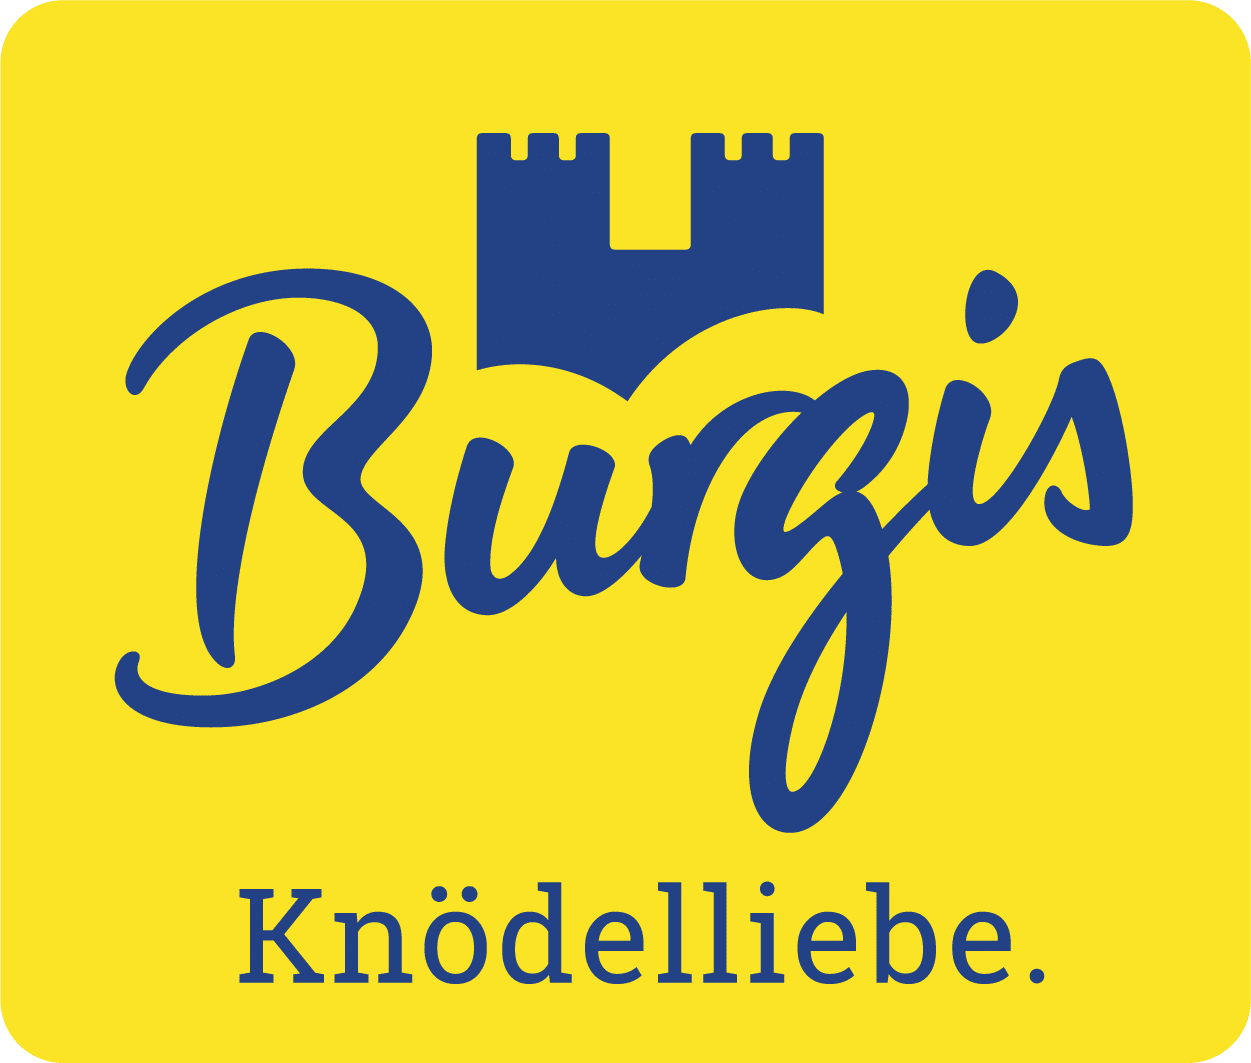 https://proveg.com/de/wp-content/uploads/sites/5/2020/12/Burgis.png